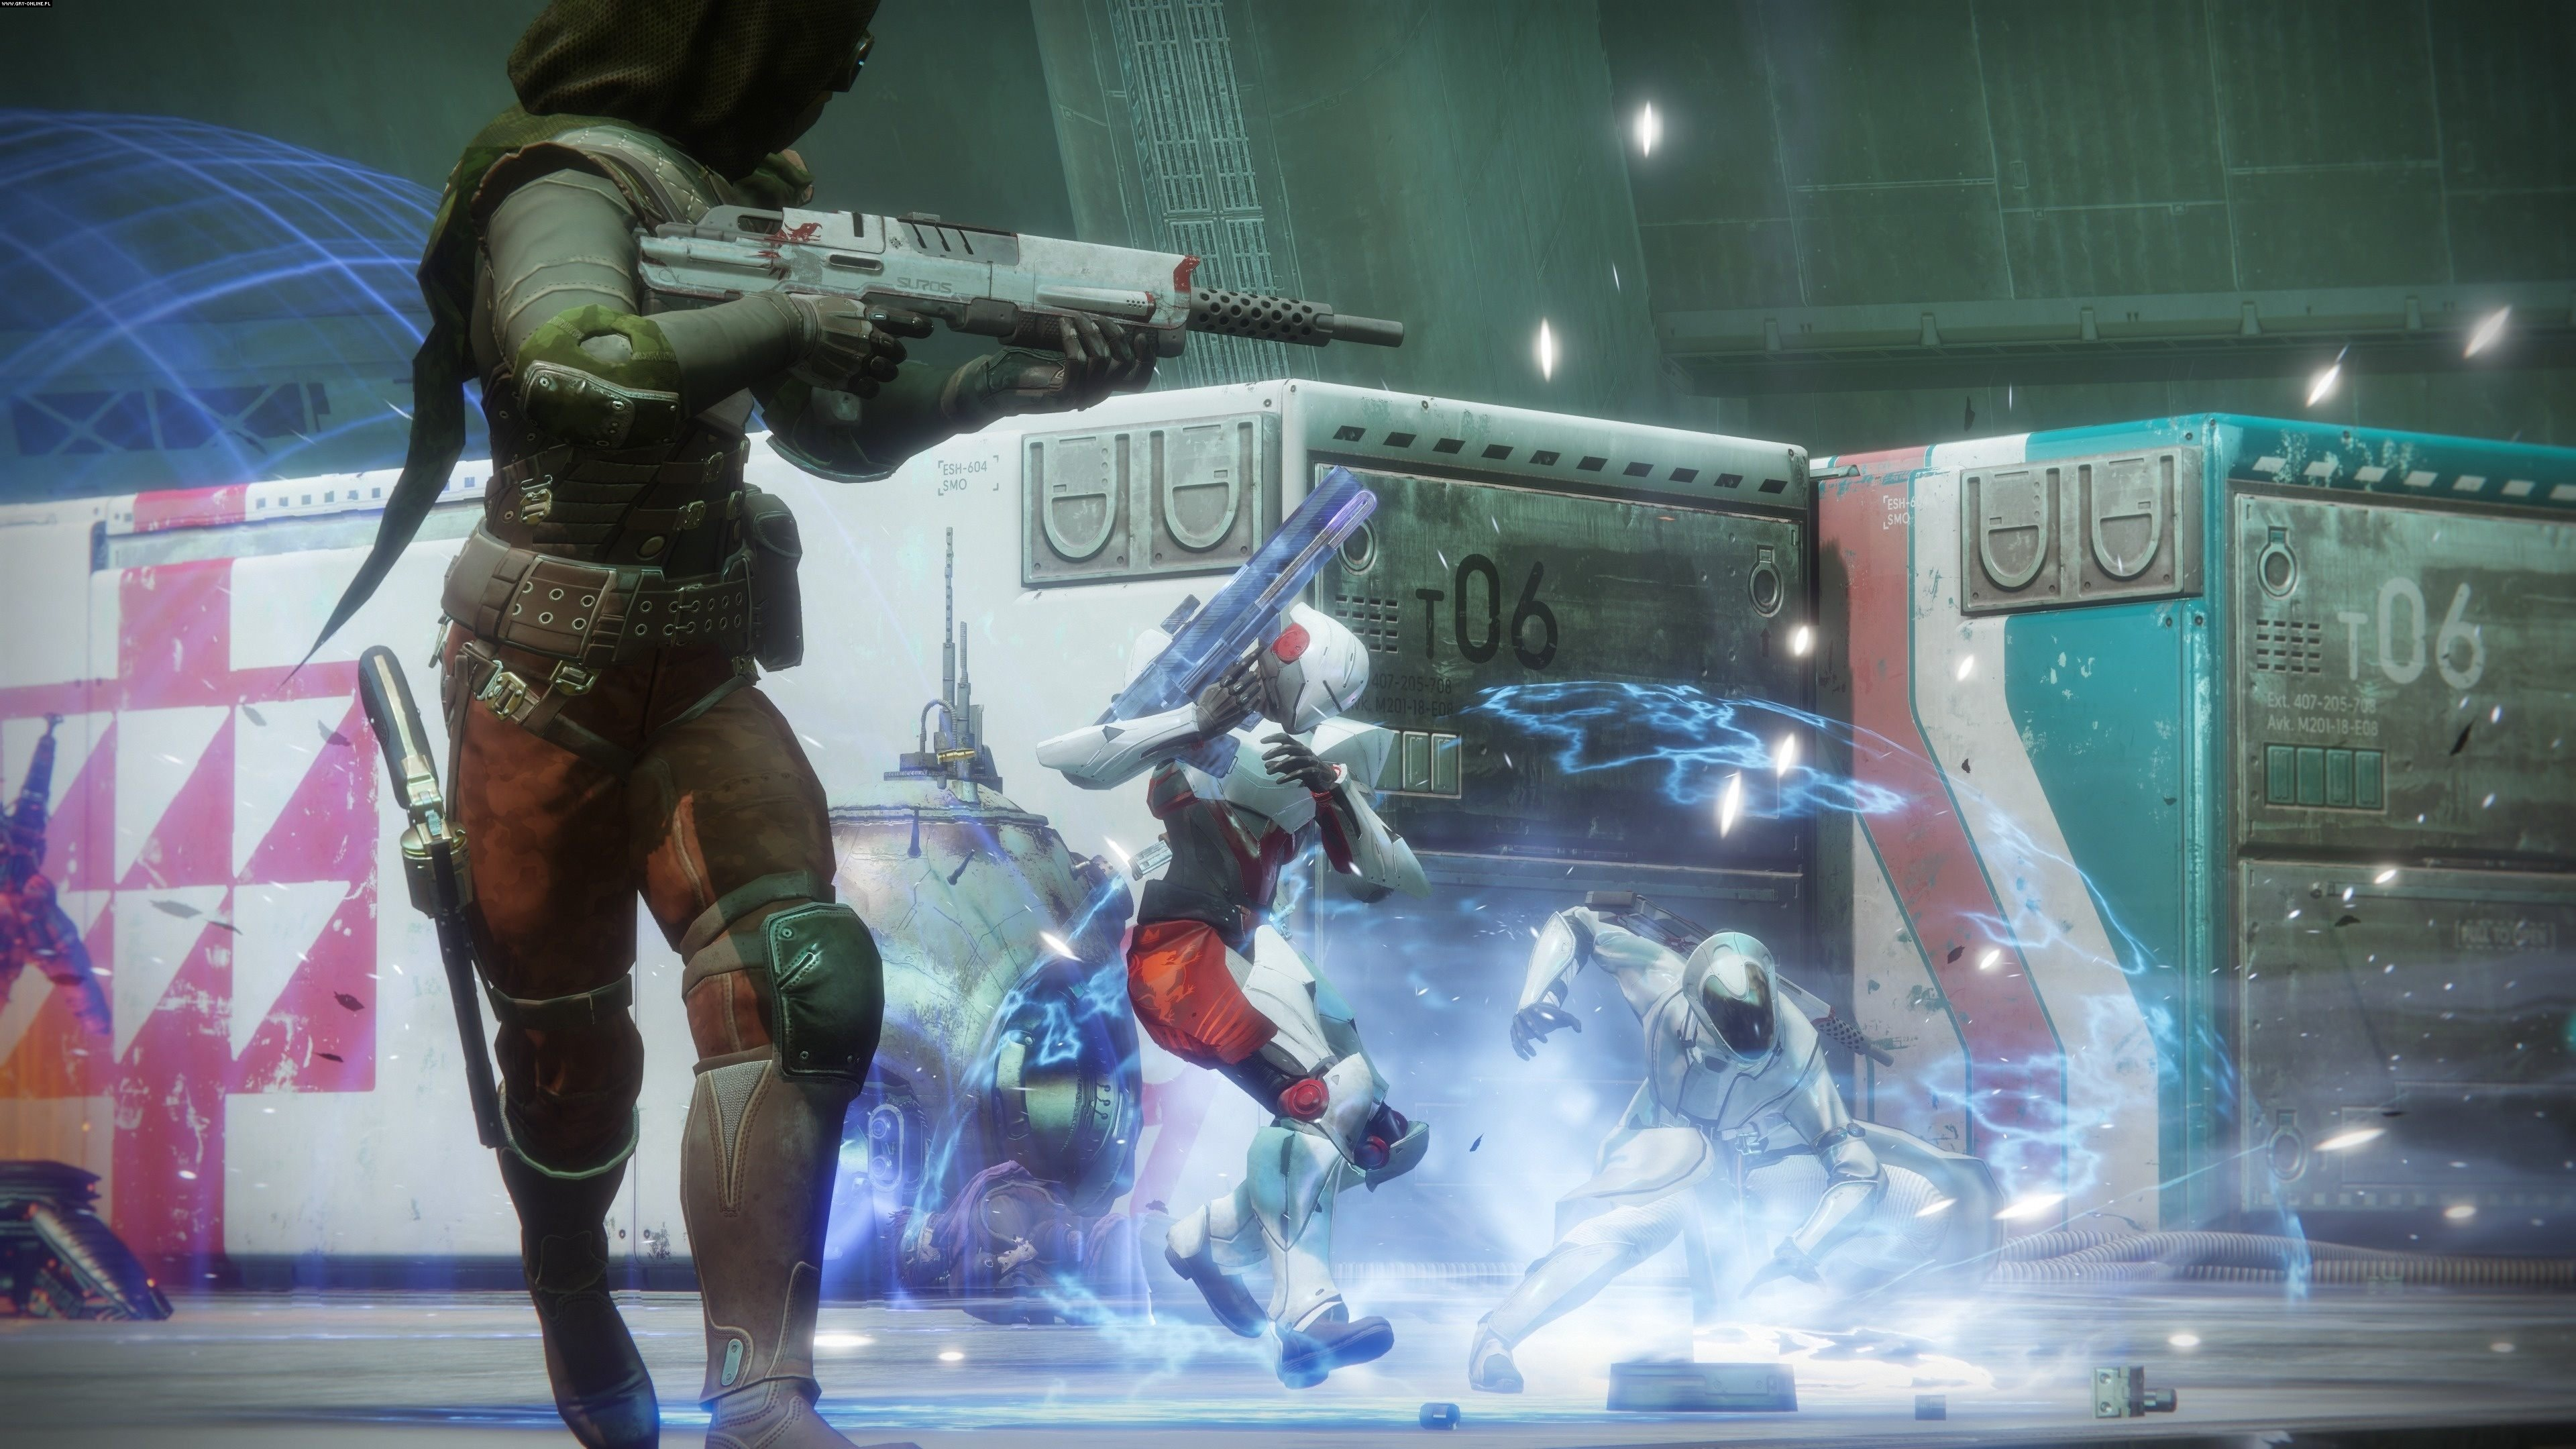 Destiny 2 PC, PS4, XONE Games Image 5/241, Bungie Software, Activision Blizzard